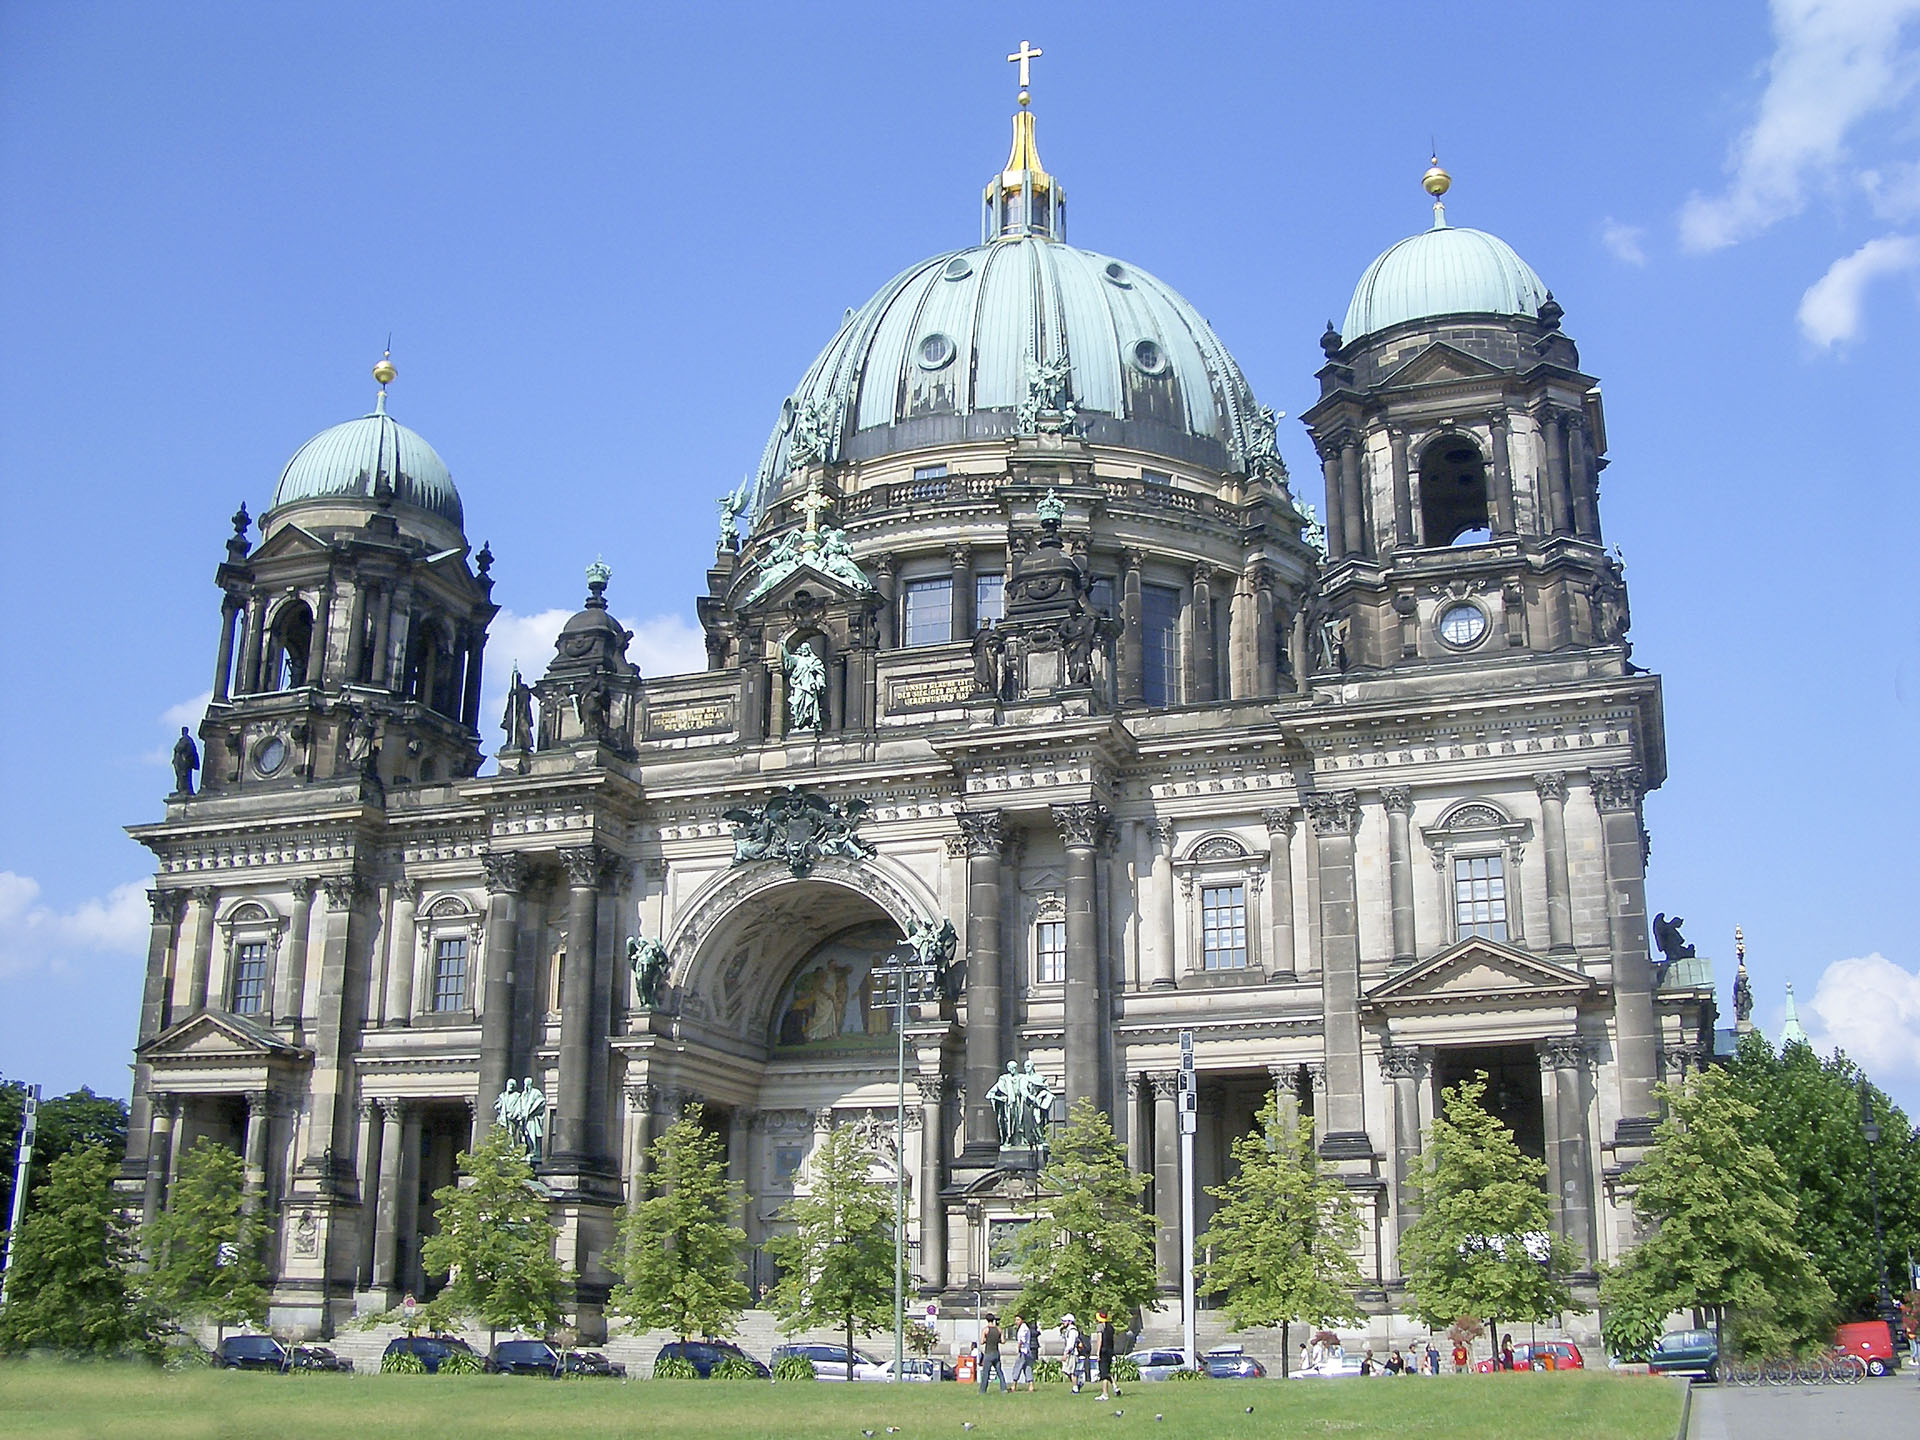 Facade of Berlin Cathedral, Germany